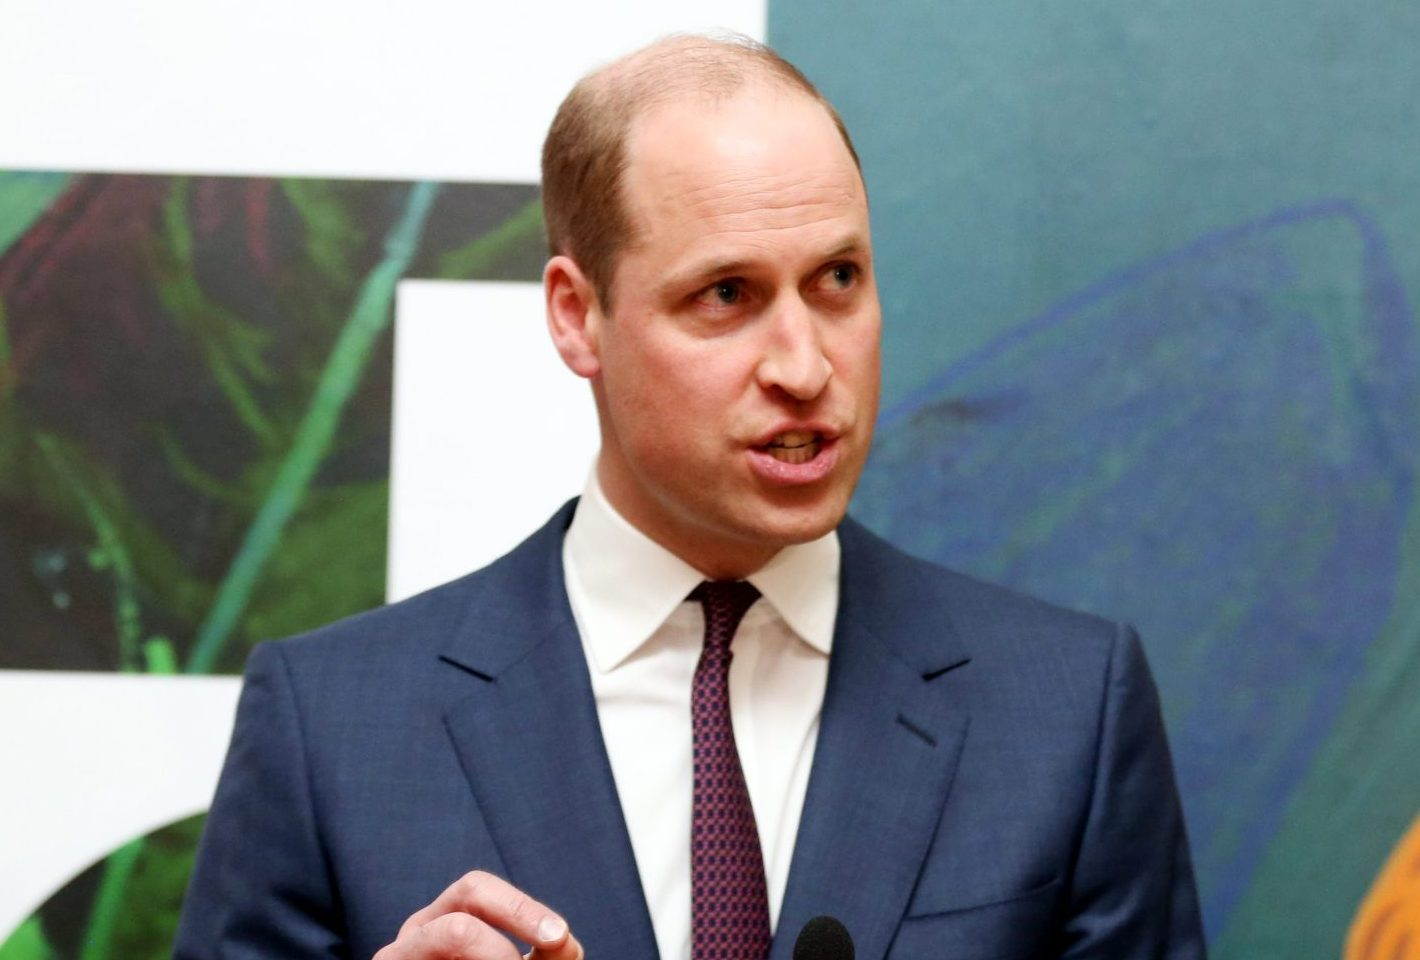 """Coronavirus: Prince William urges Brits to help """"protect the most vulnerable"""" in heartfelt plea"""